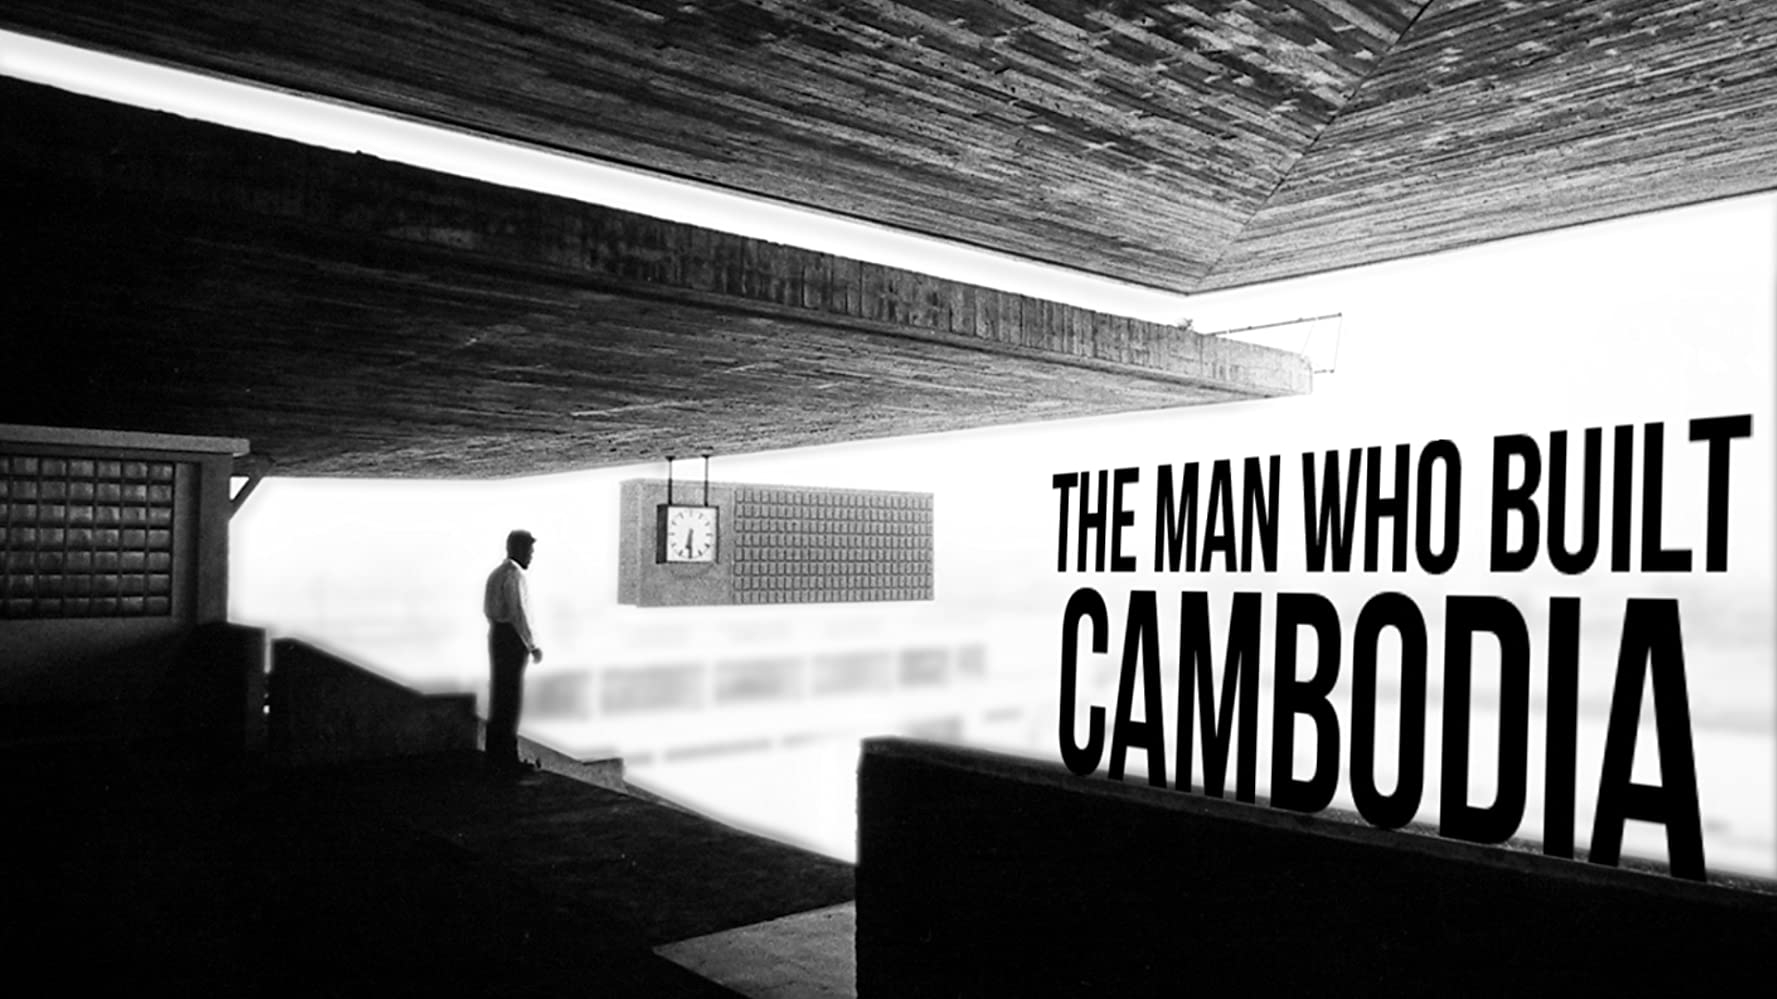 The Man Who Built Cambodia promo image